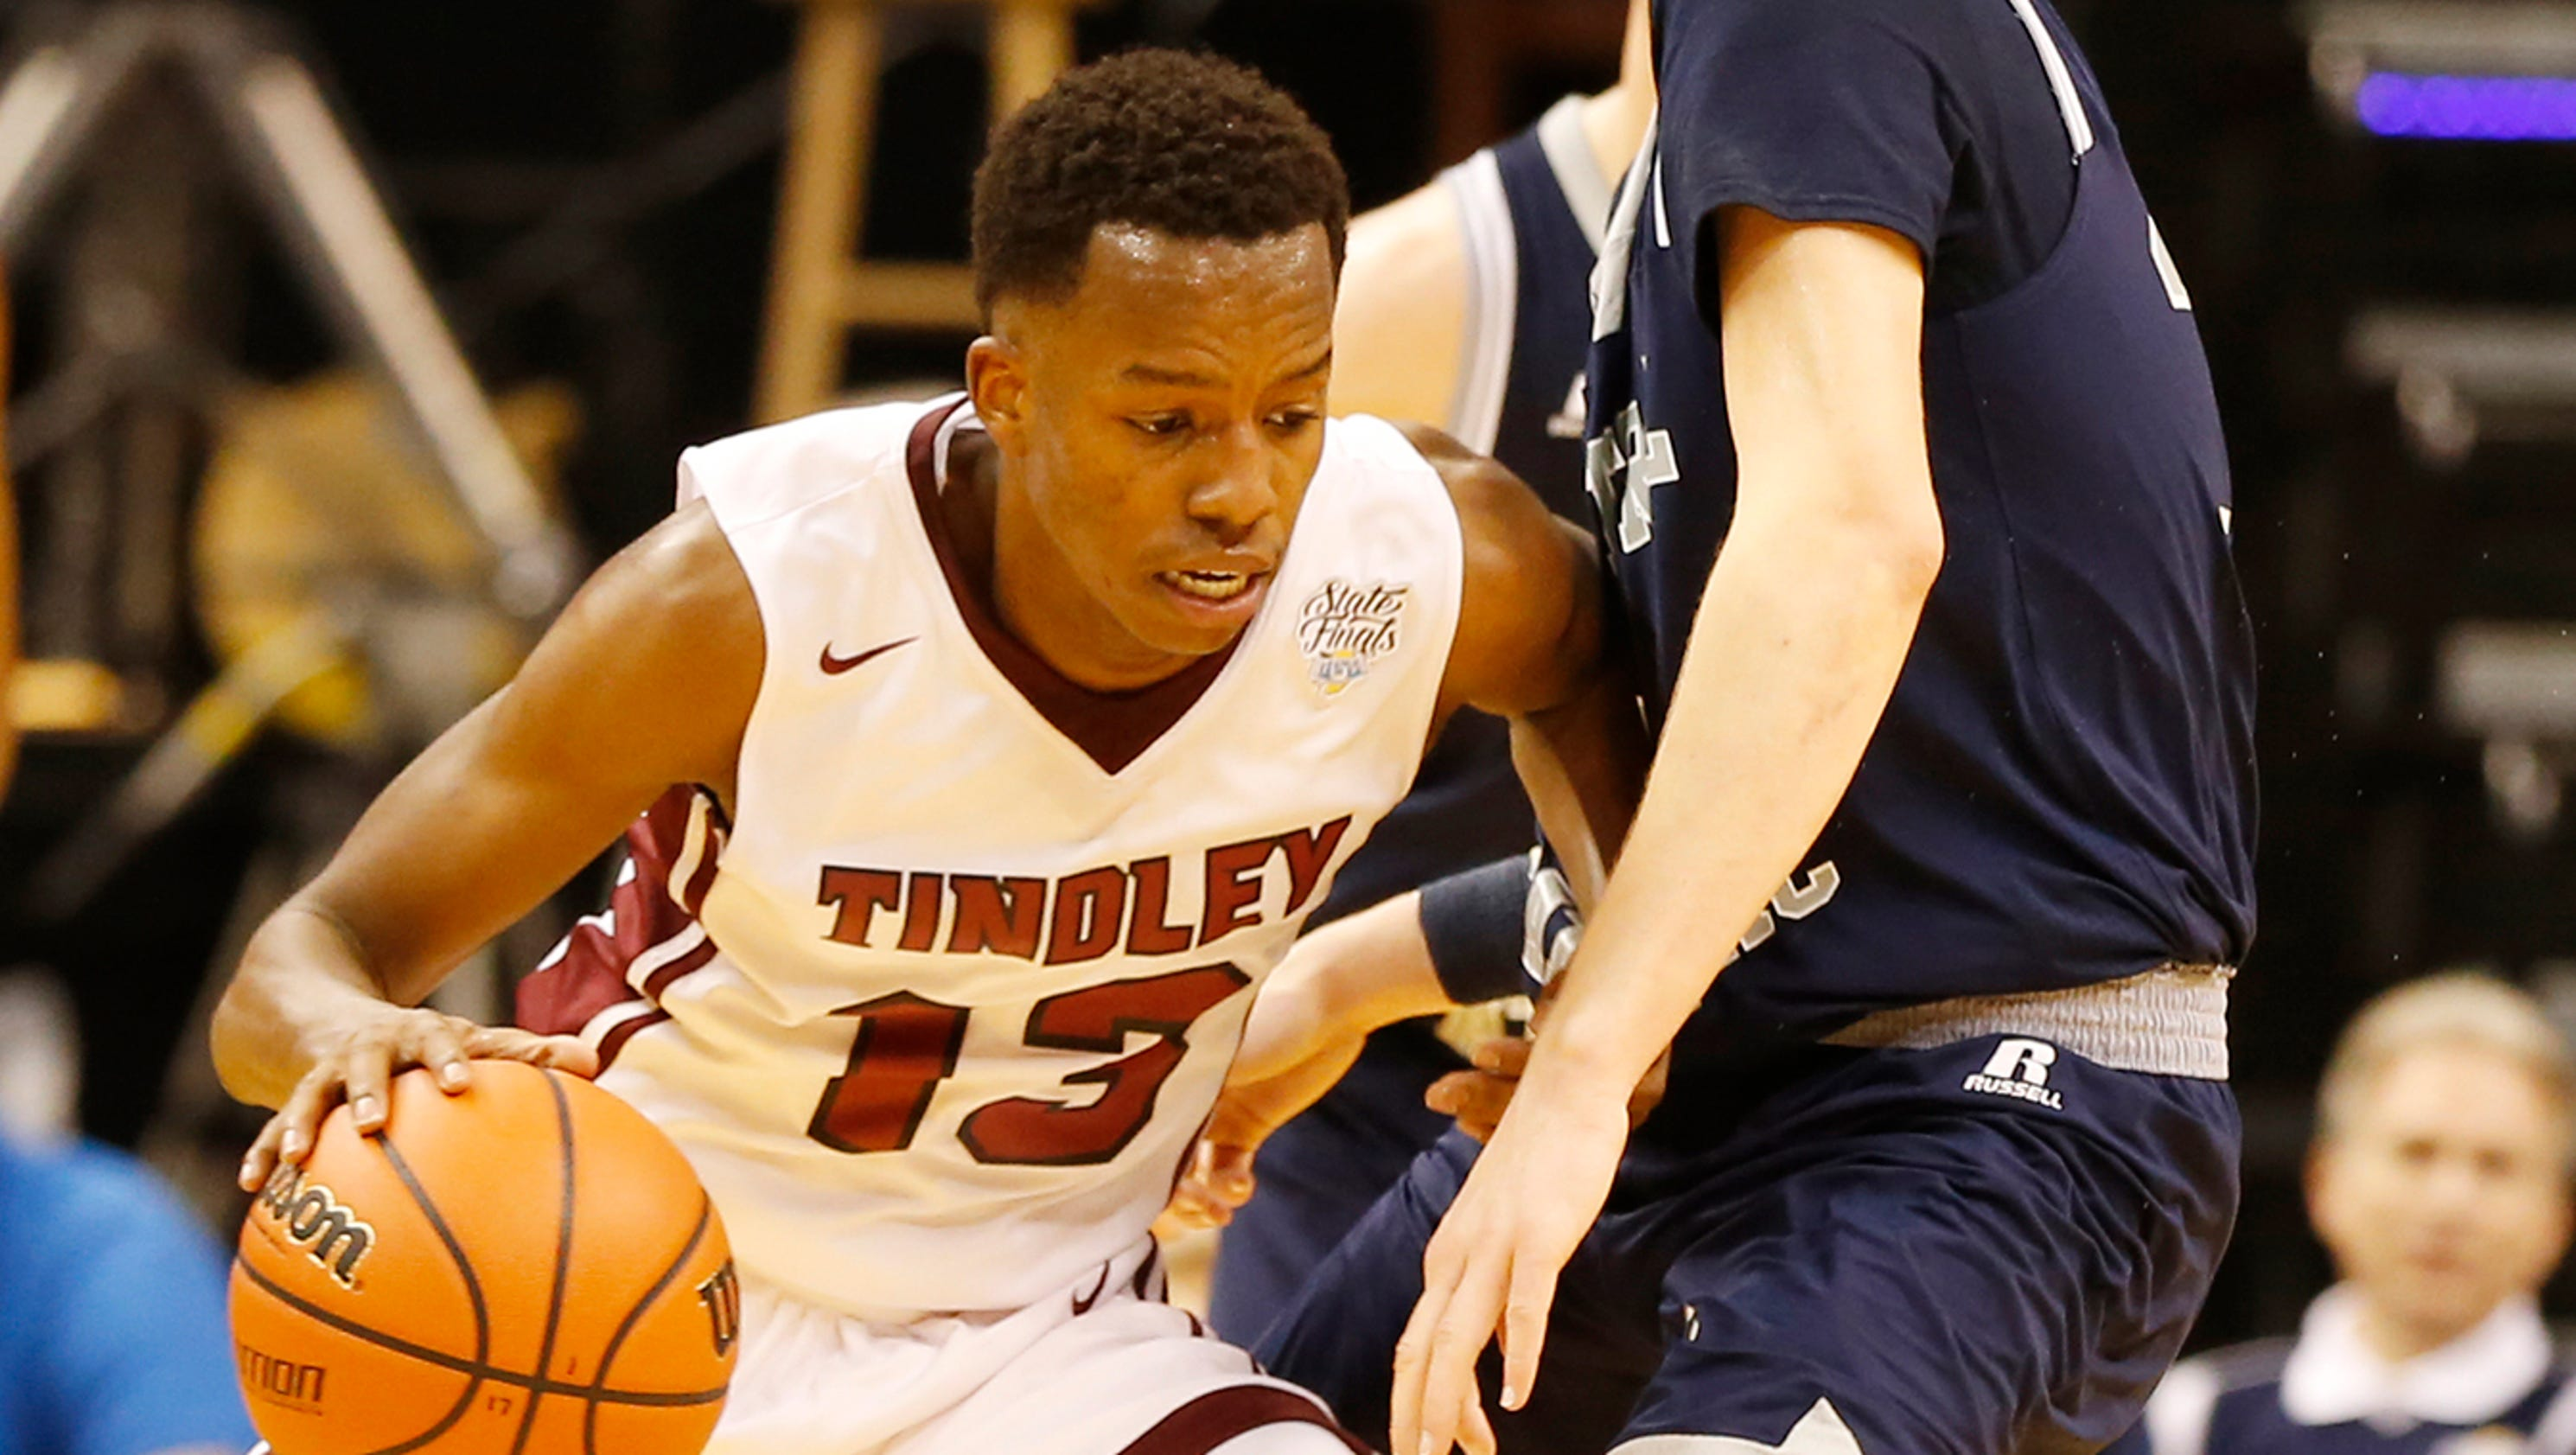 636260488286570300-laf-class-a-state-championship-cc-tindley-32